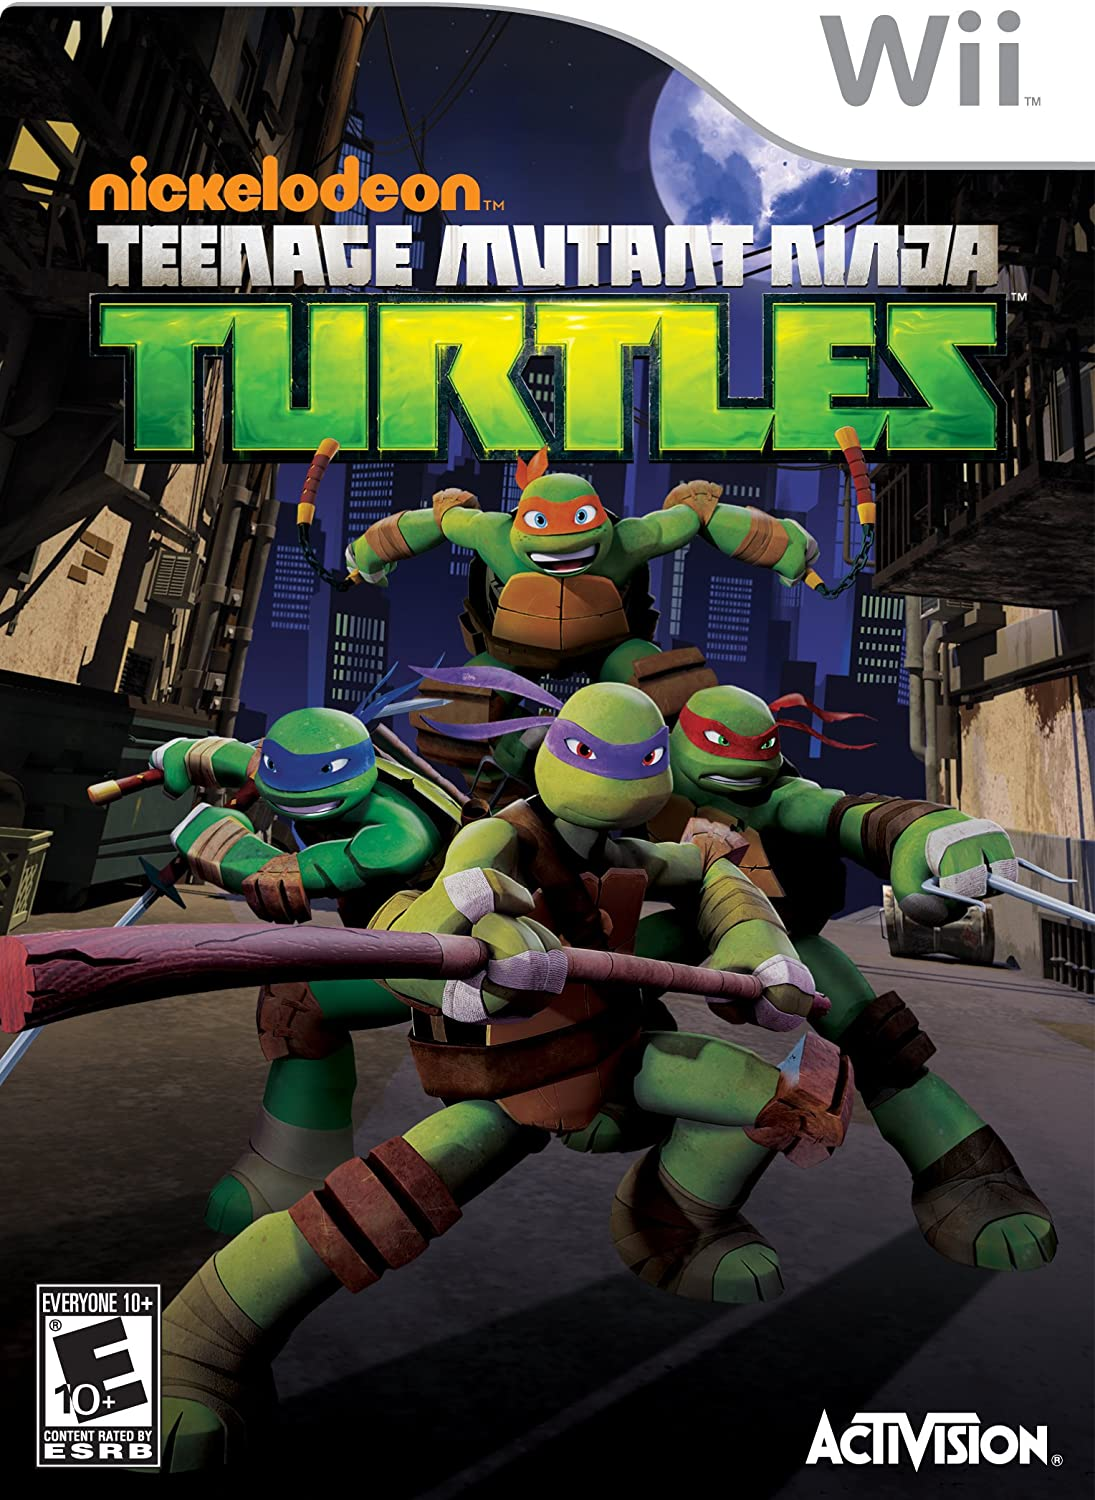 Amazon.com: Teenage Mutant Ninja Turtles: xbox 360 ...